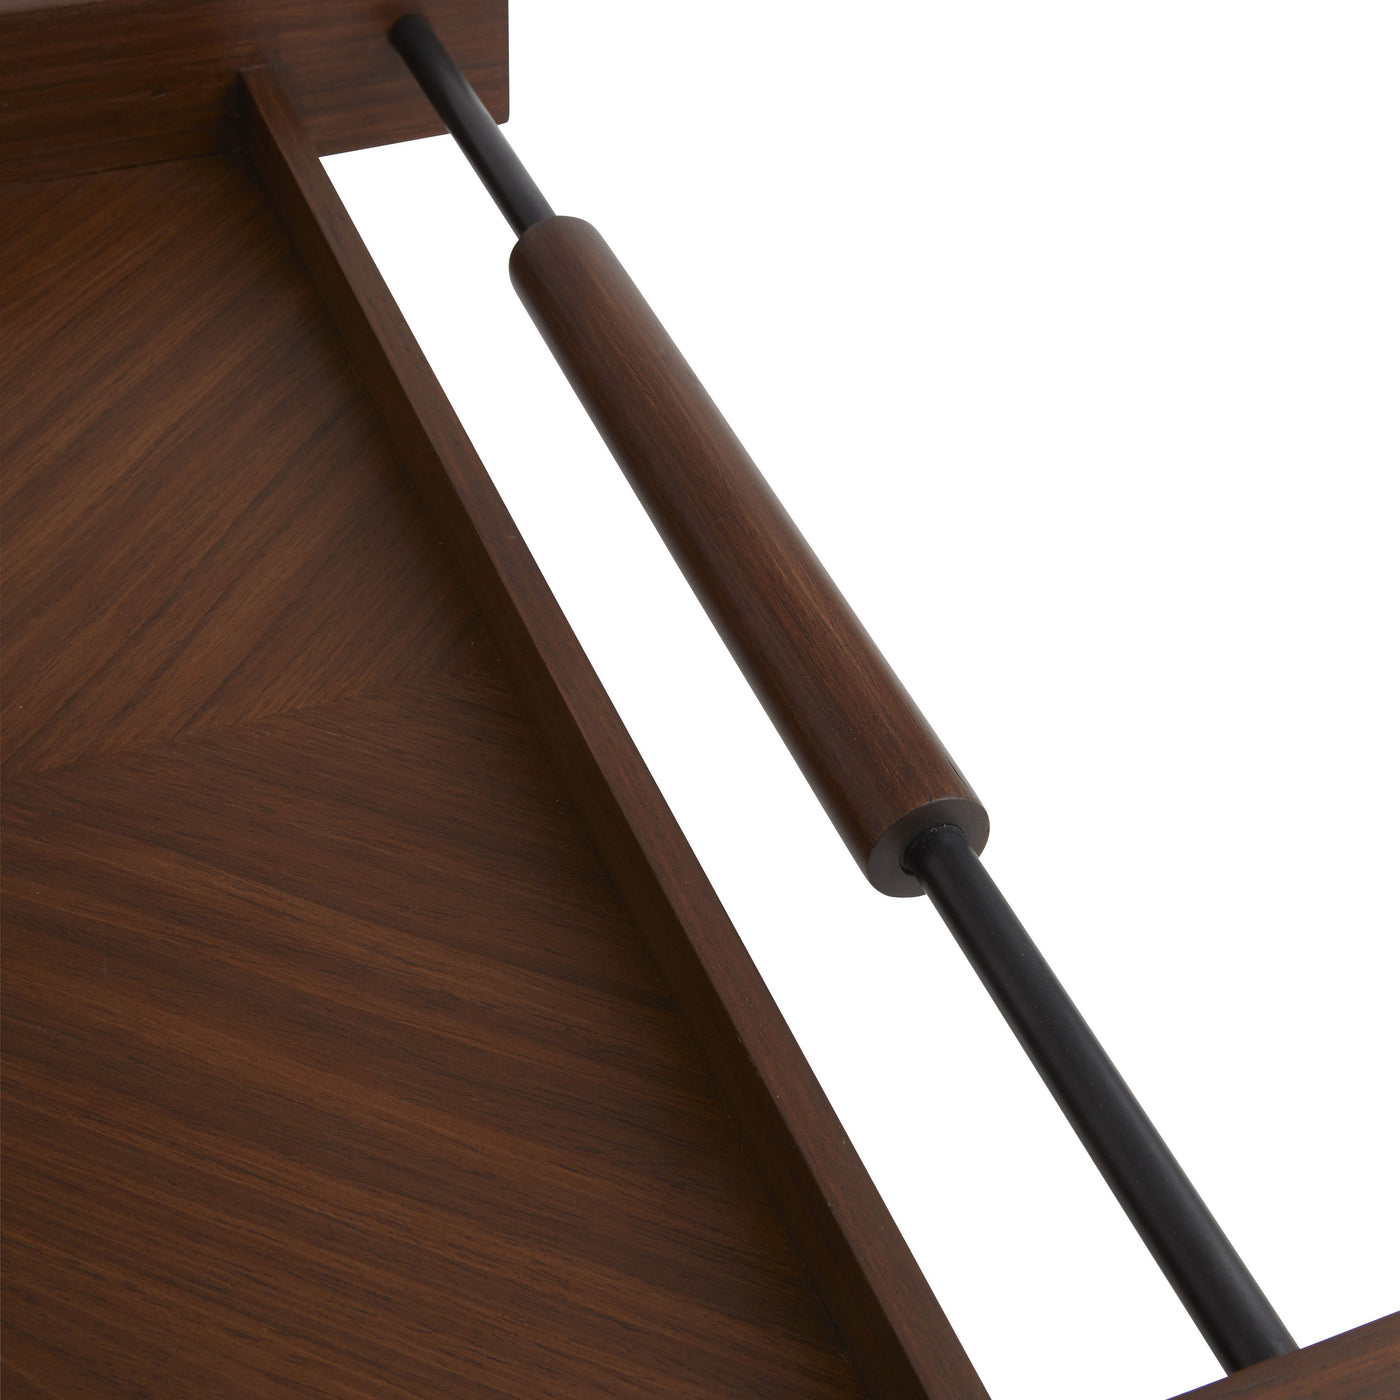 Arteriors Home Tract Tray Handle Detail